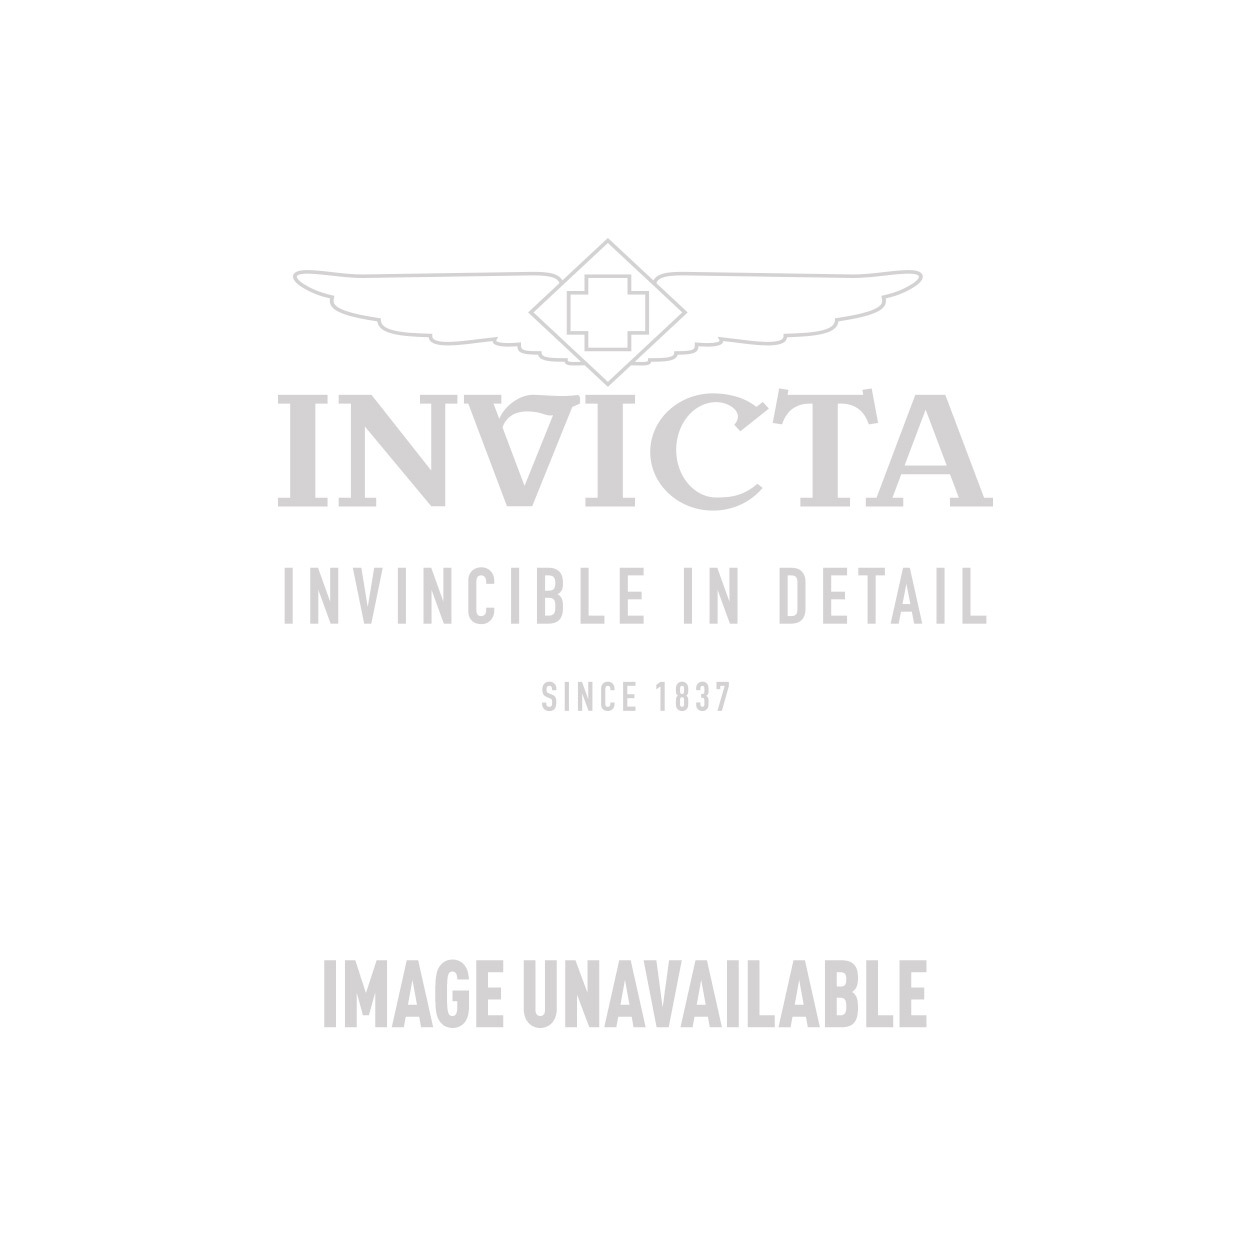 Invicta 20cm Women's Bracelets in Rose Gold - Model J0286